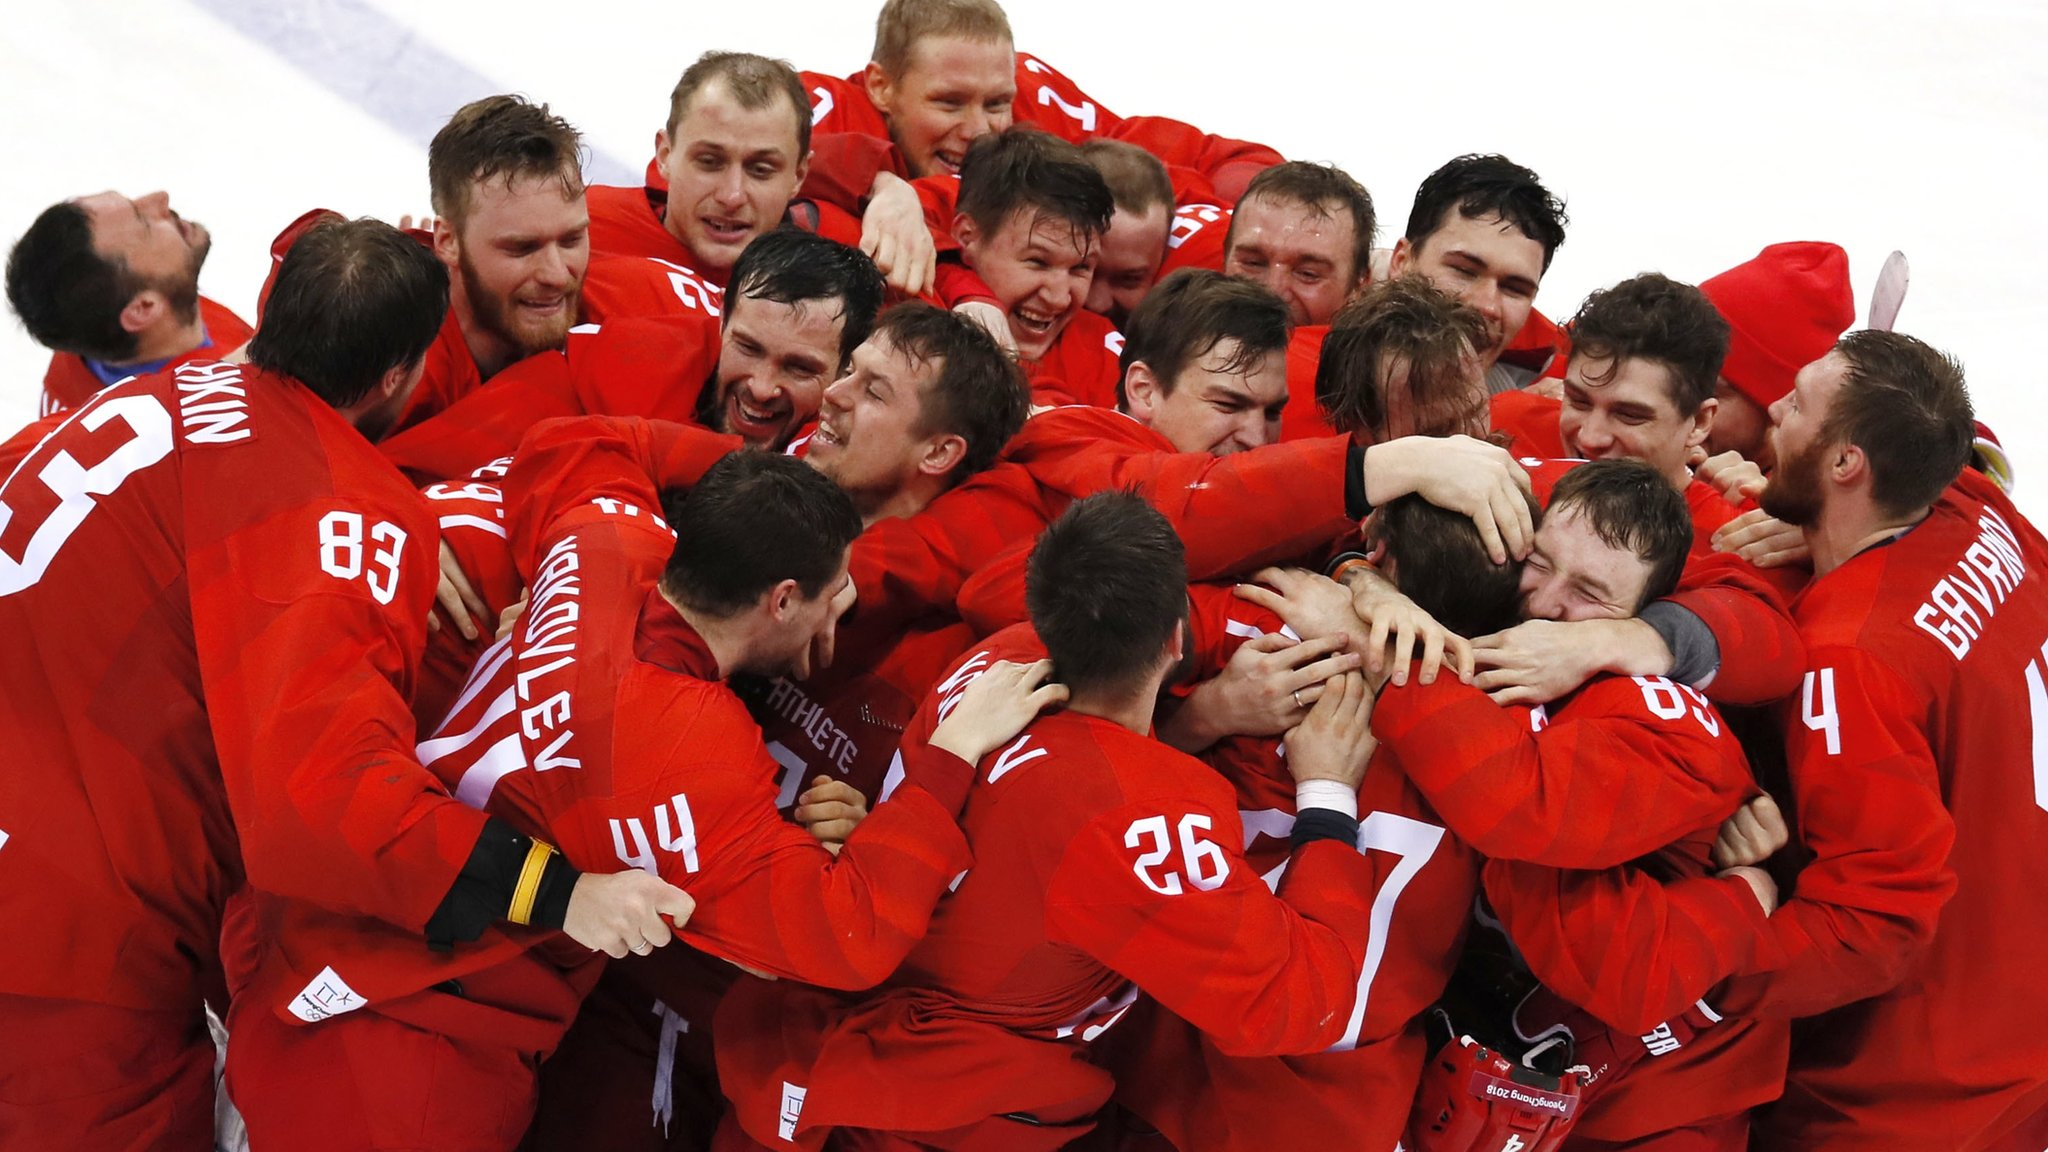 Winter Olympics: OAR win ice hockey gold with thrilling overtime winner against Germany